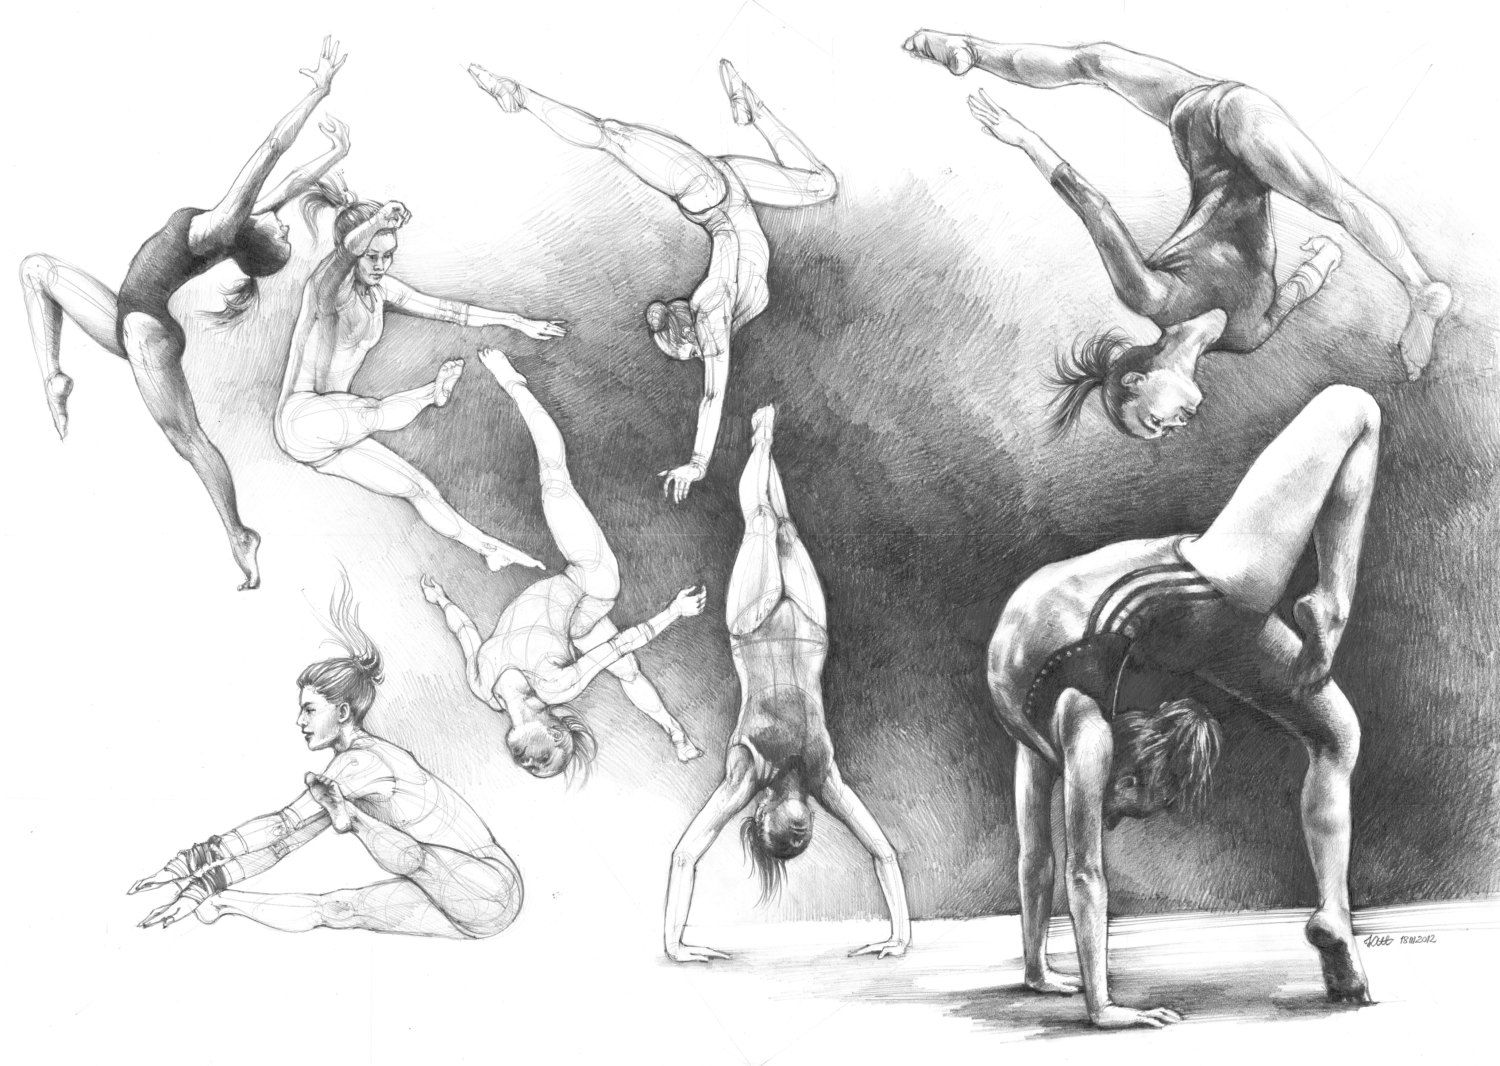 Very realistic figural drawing of women gymnastics by katarzyna kmiecik pencil drawing of complicated human figures in motion